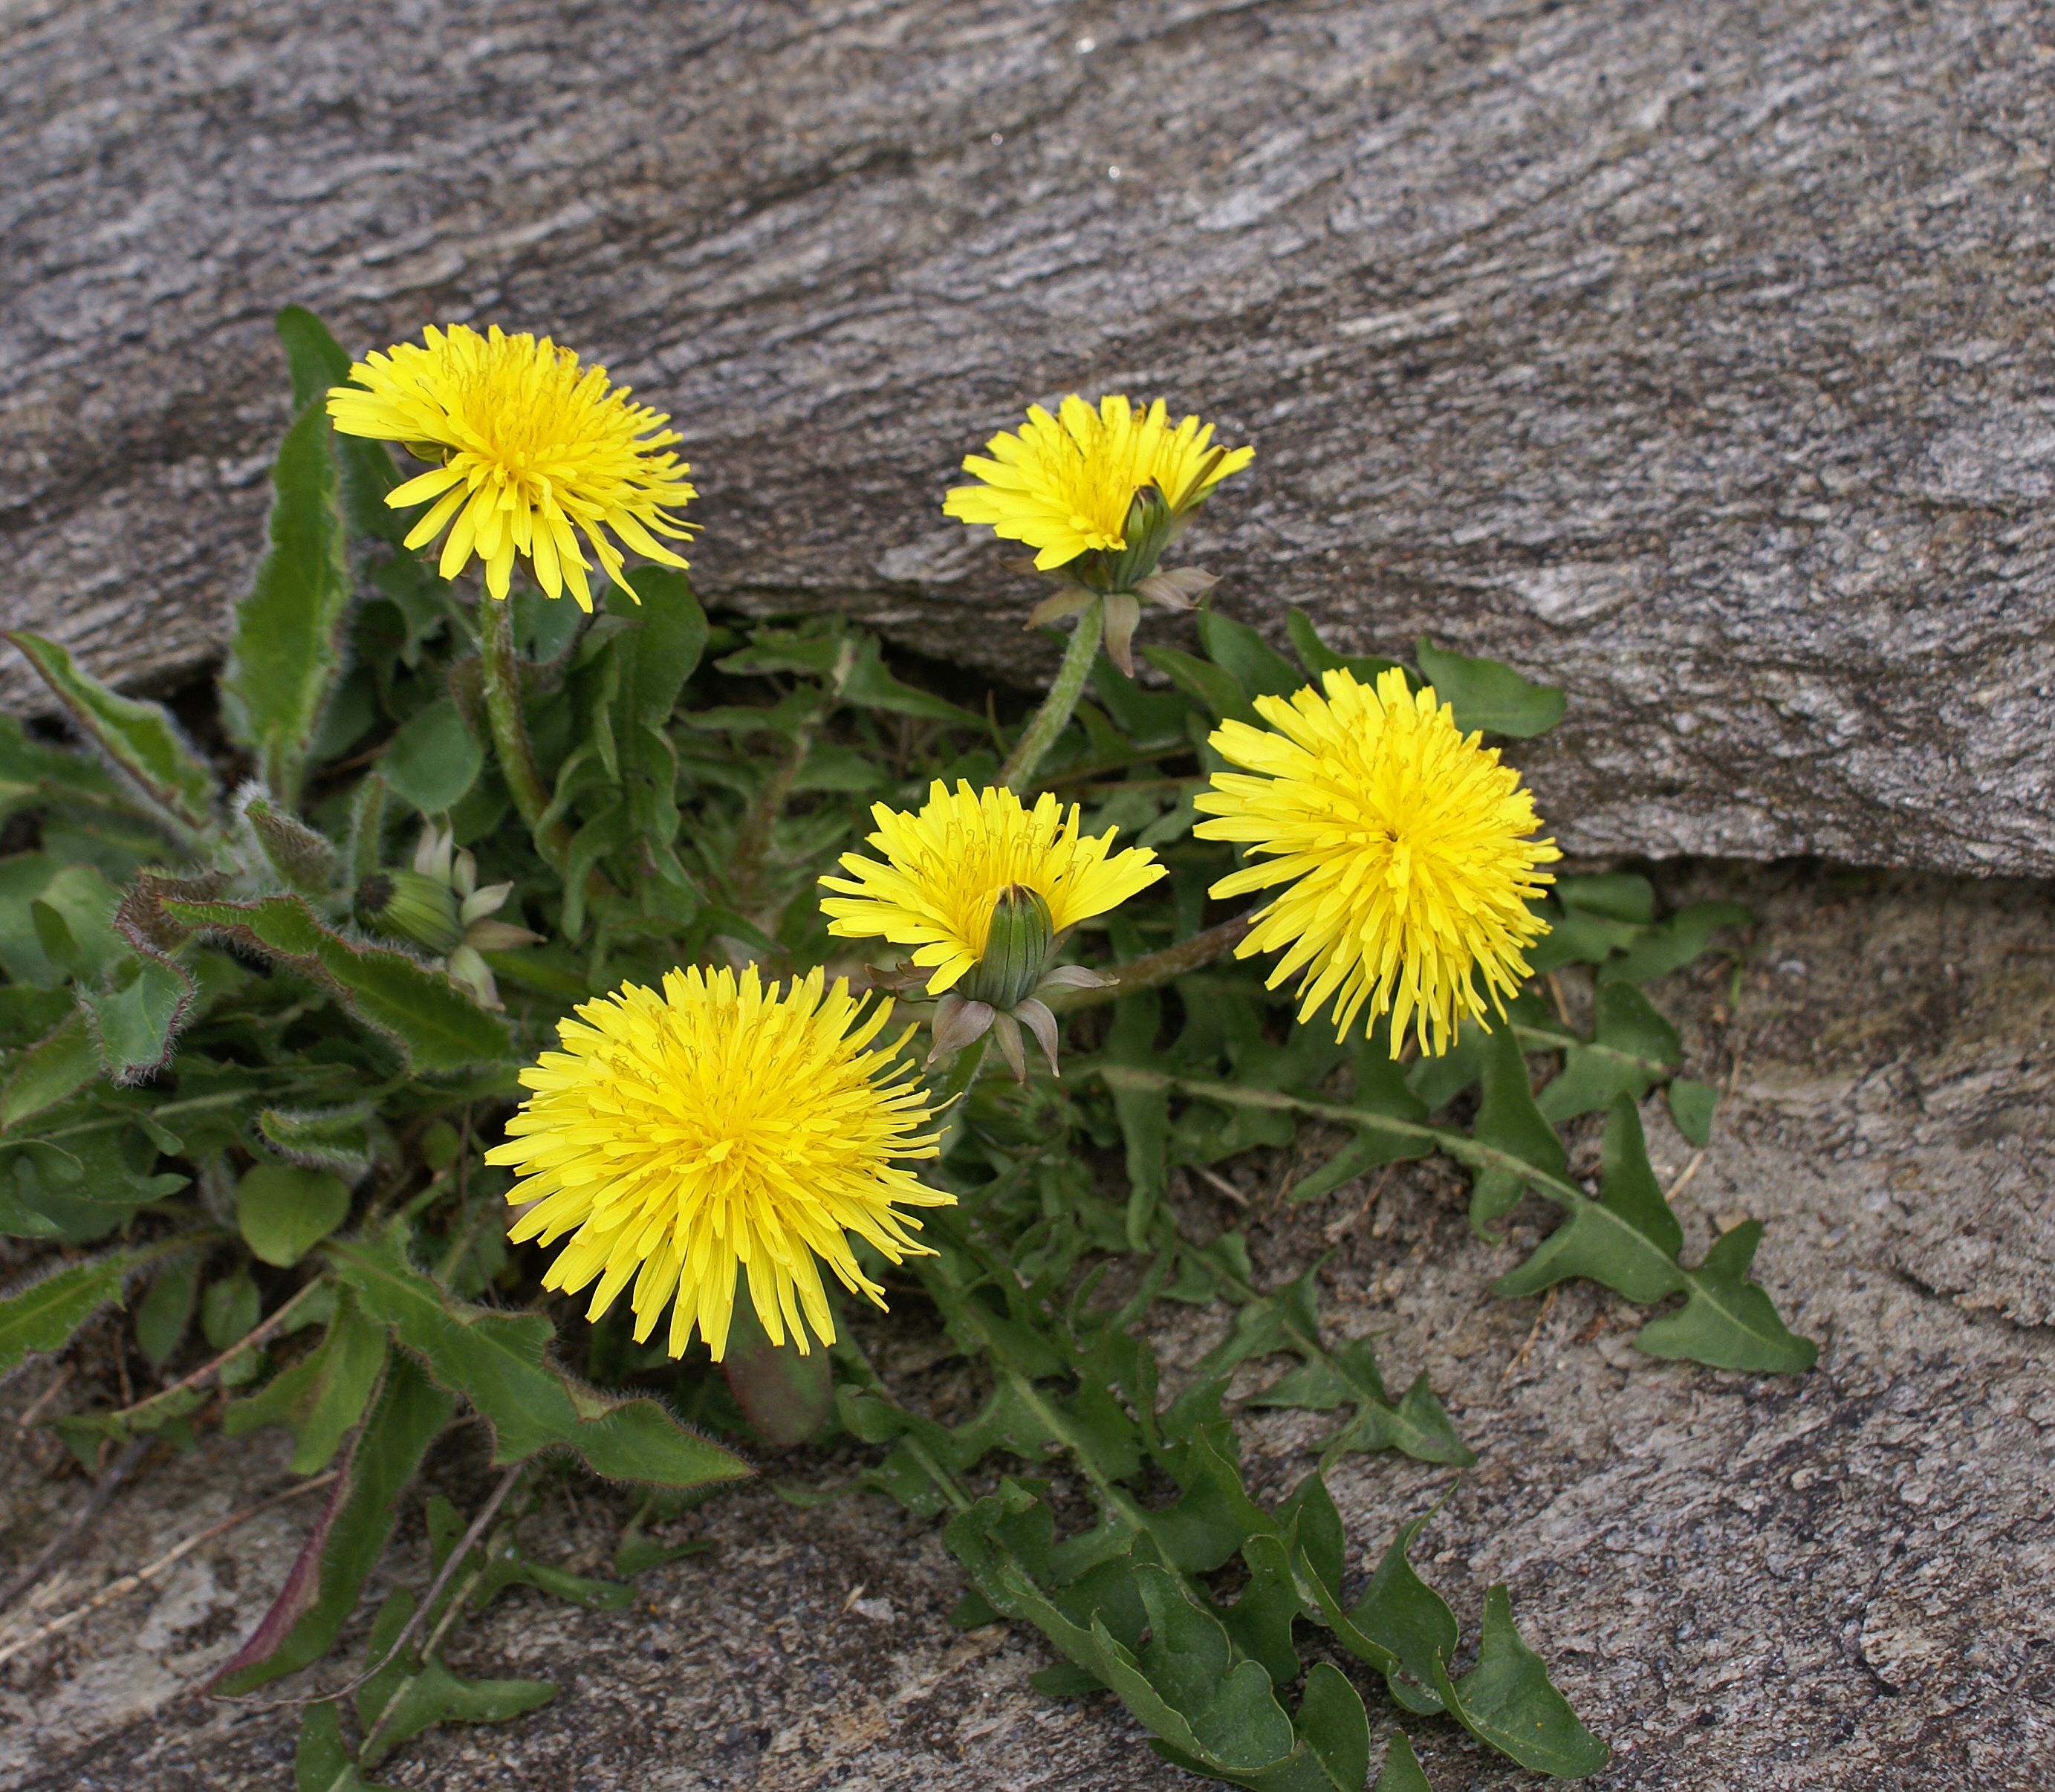 Taraxacum officinale, By Randi Hausken from Bærum, Norway (Dandelion  Uploaded by russavia) [CC BY-SA 2.0 (http://creativecommons.org/licenses/by-sa/2.0)], via Wikimedia Commons